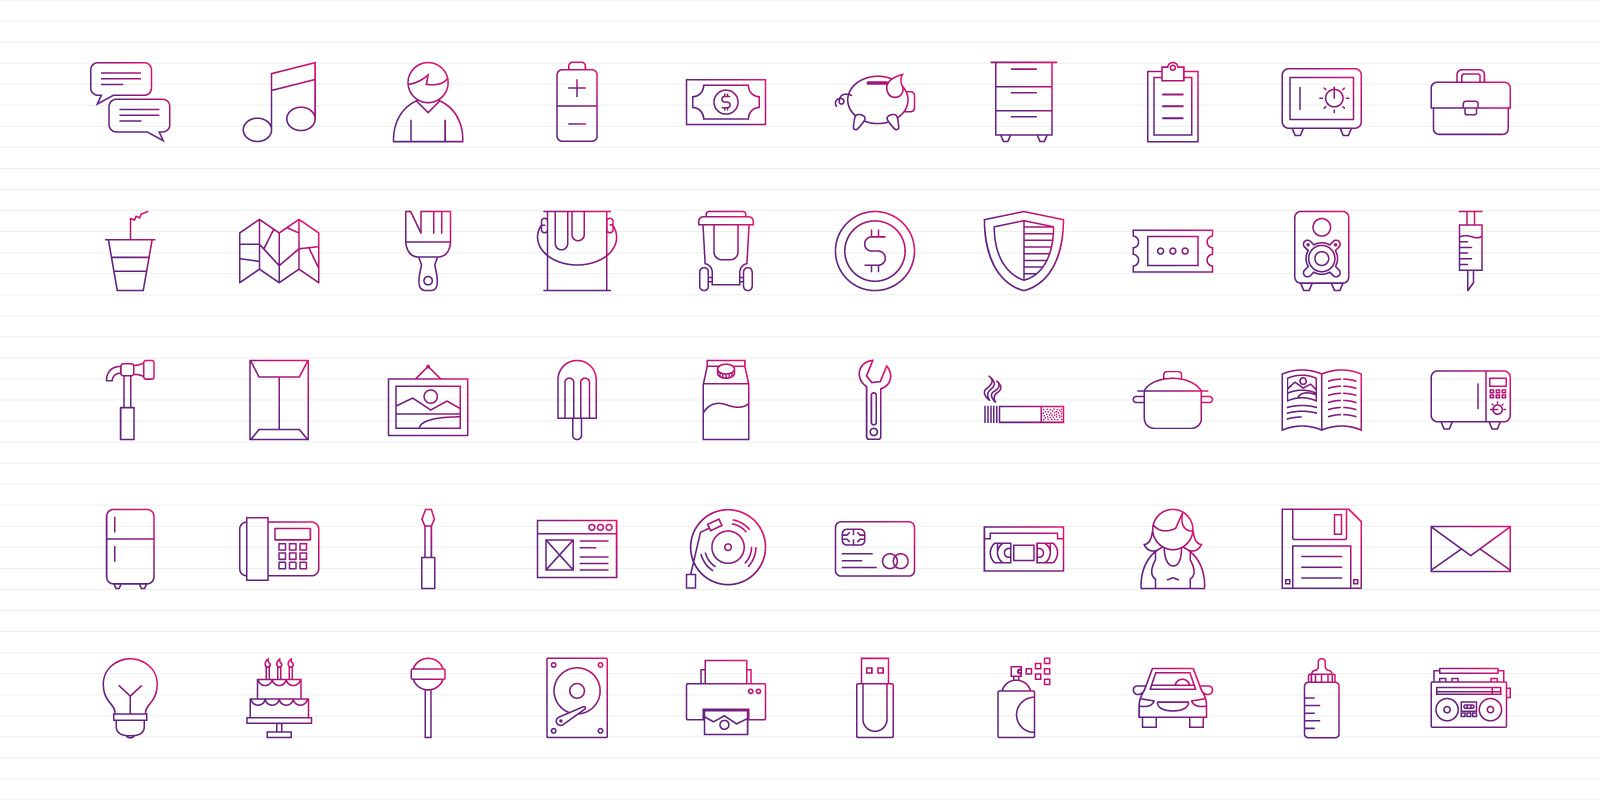 Purple Thin Lines - Vector Icon Pack Screenshot 1